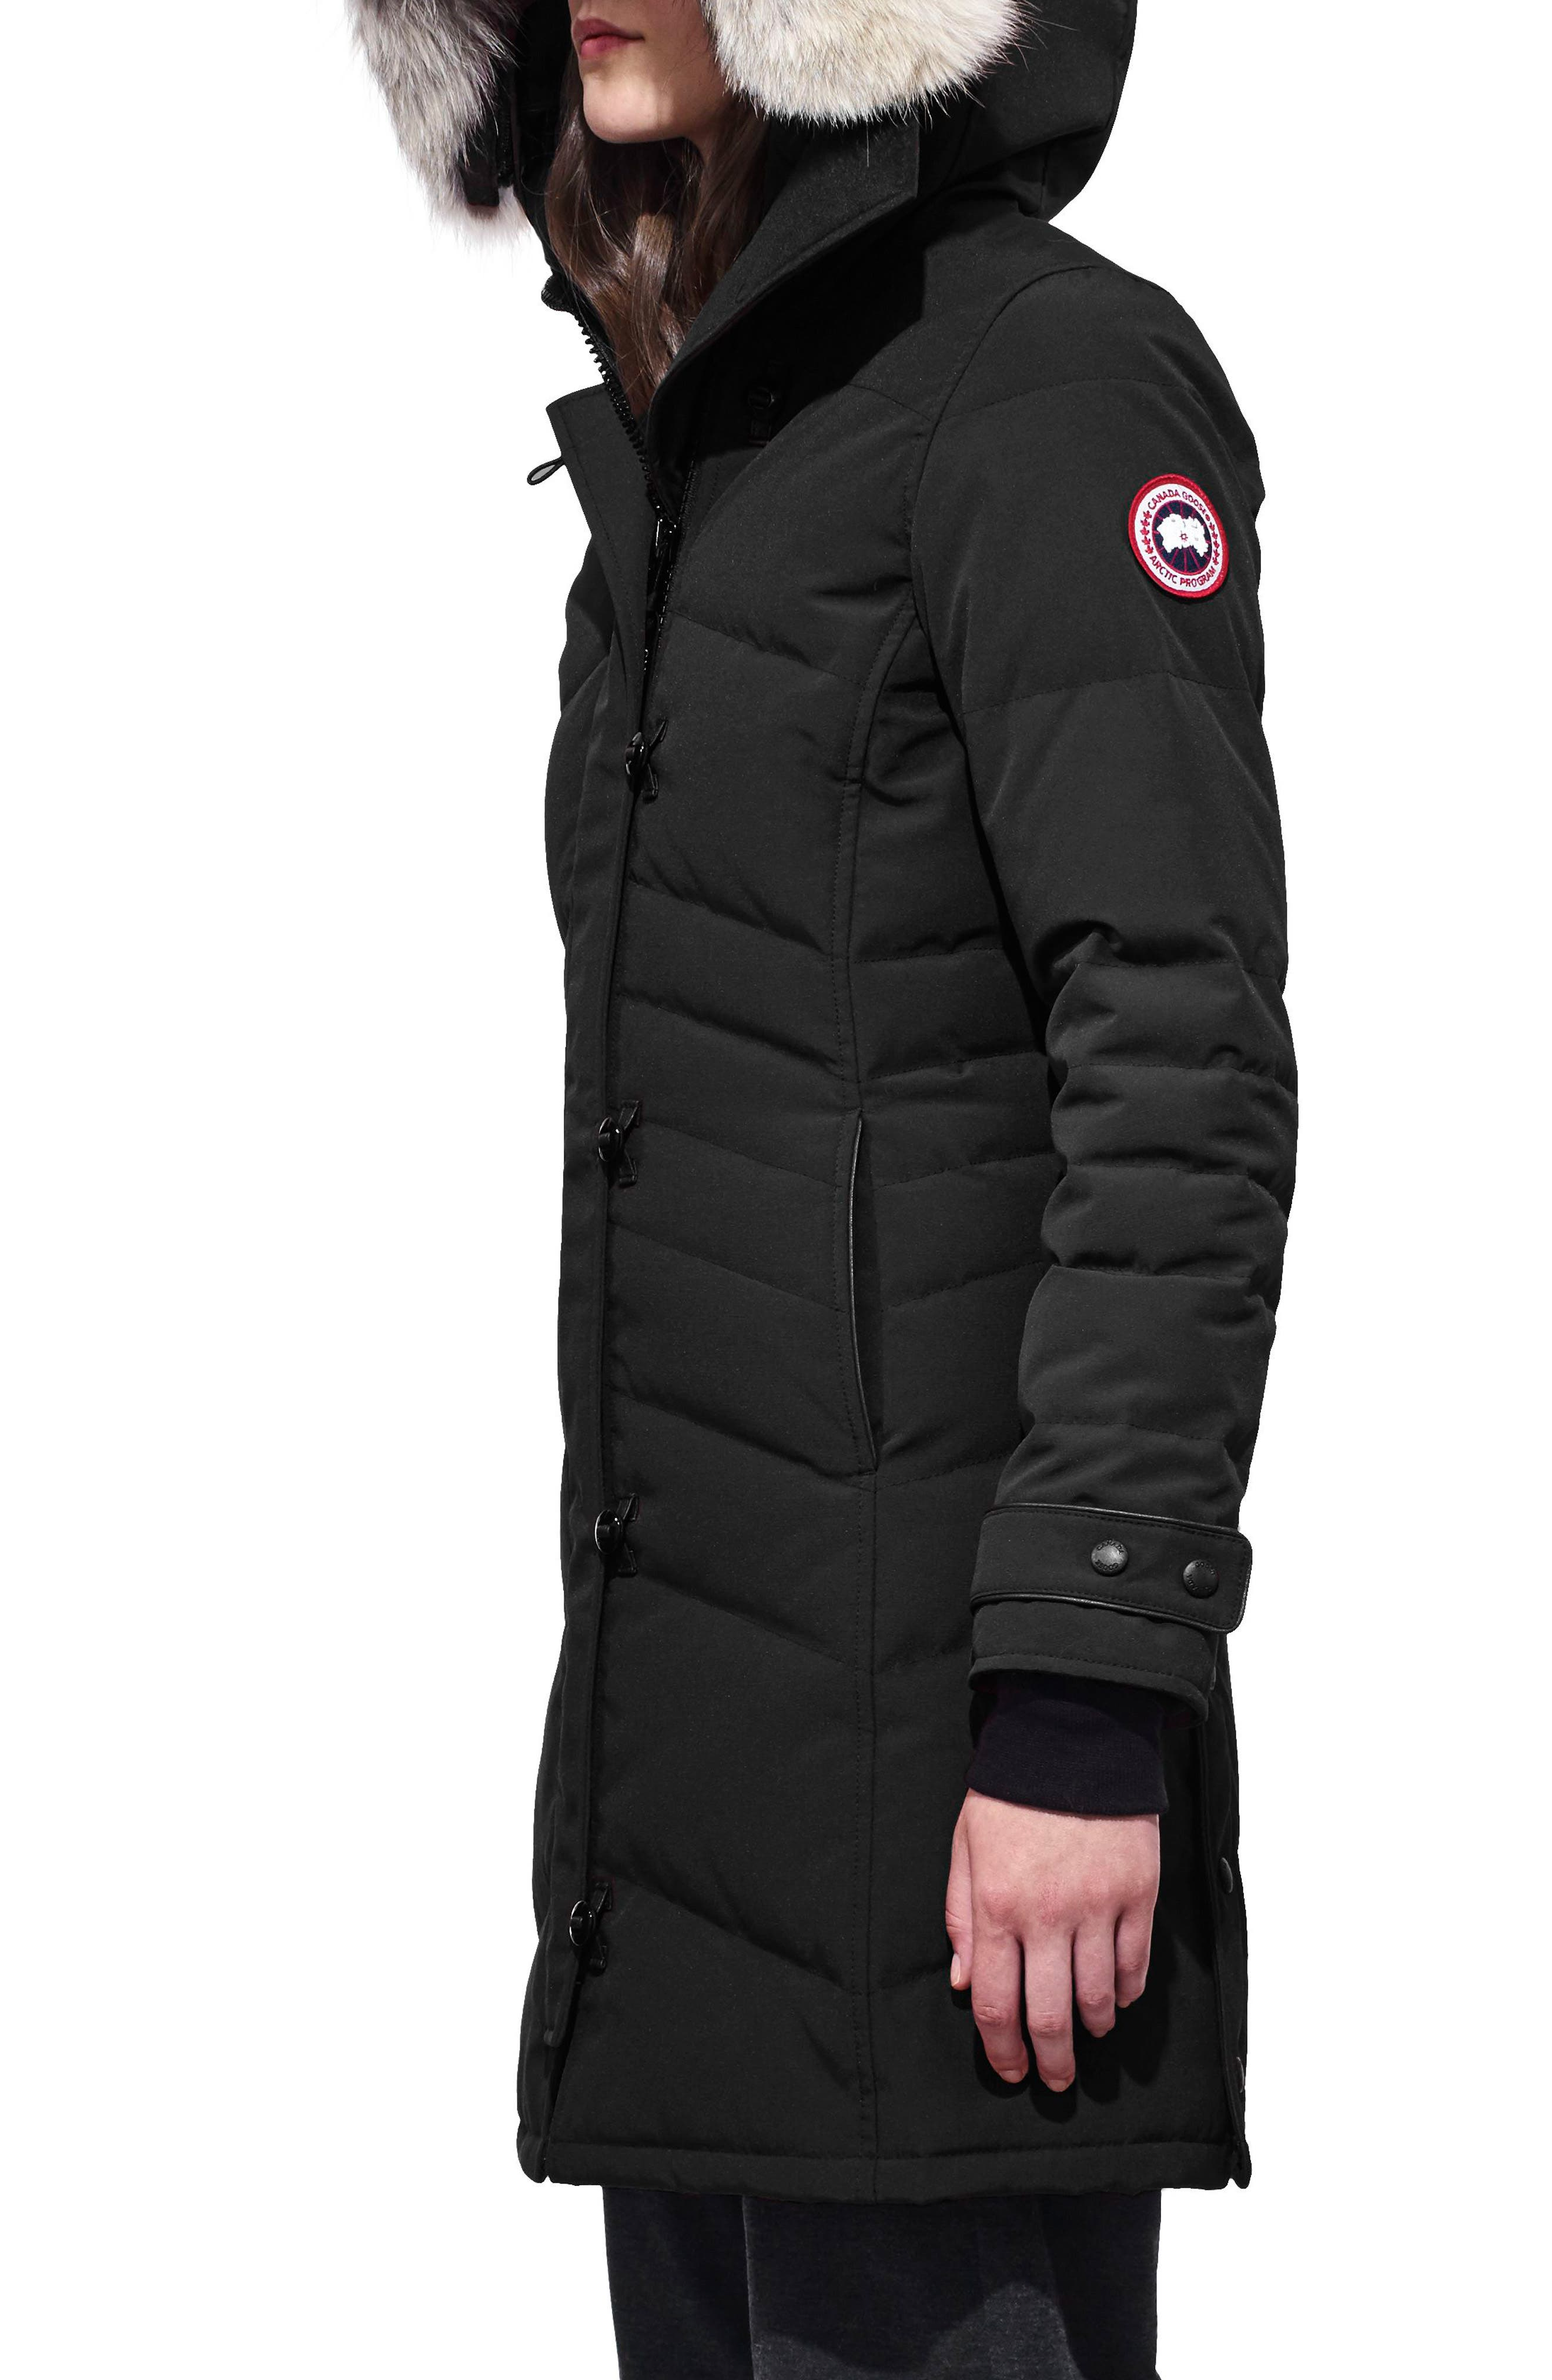 Lorette Fusion Fit Hooded Down Parka with Genuine Coyote Fur Trim,                             Alternate thumbnail 3, color,                             001